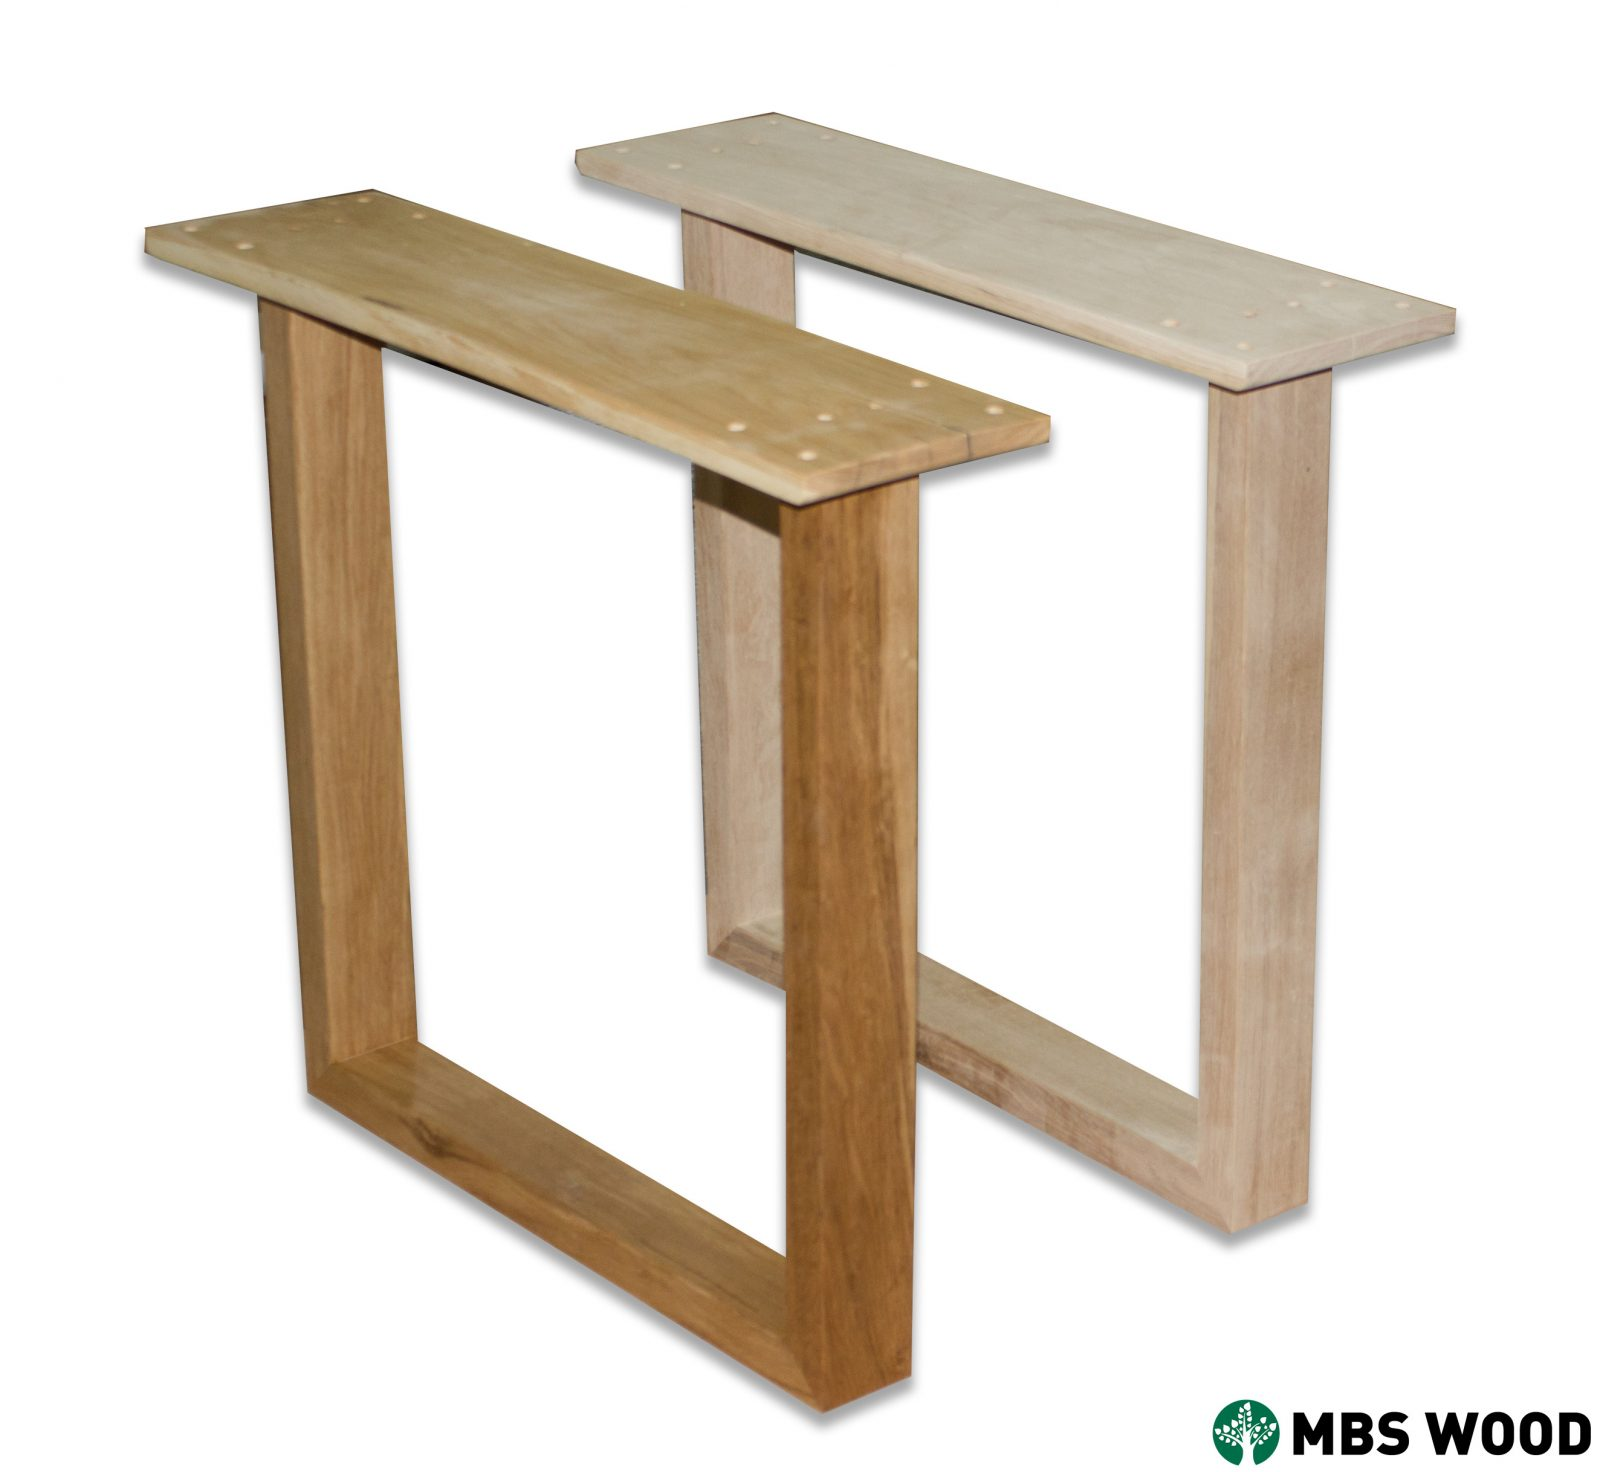 Wooden Legs For Table Furniture Production And Wholesale Mbs Wood